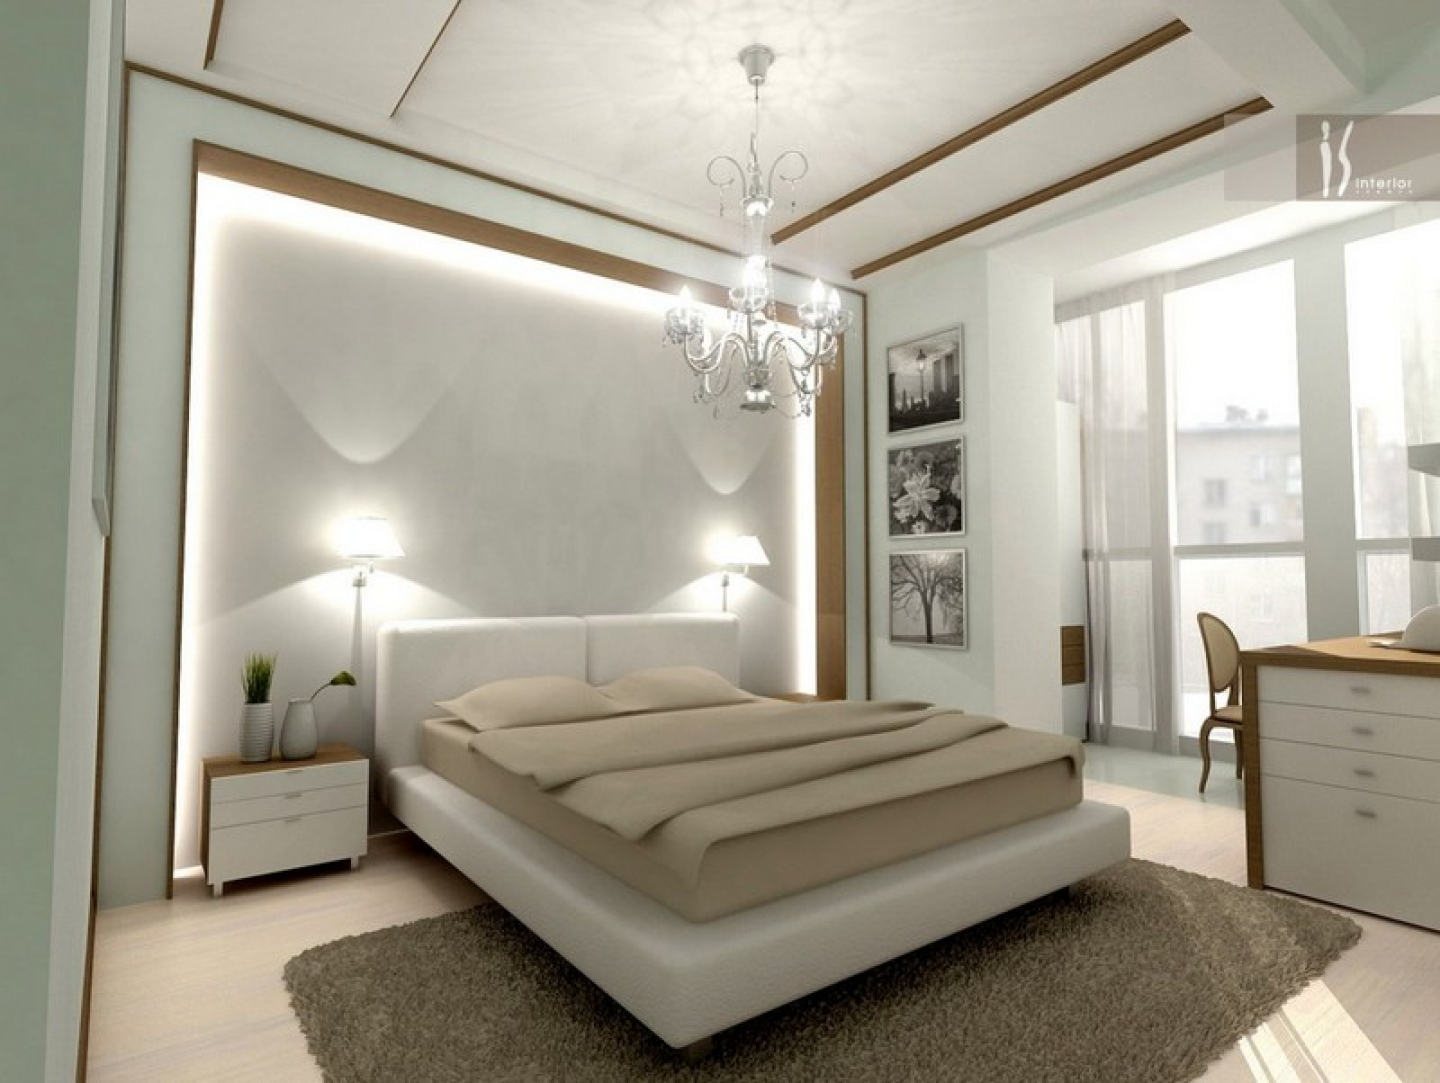 25 Cool Bedroom Designs Collection - The WoW Style on Cool Bedroom Ideas  id=22838